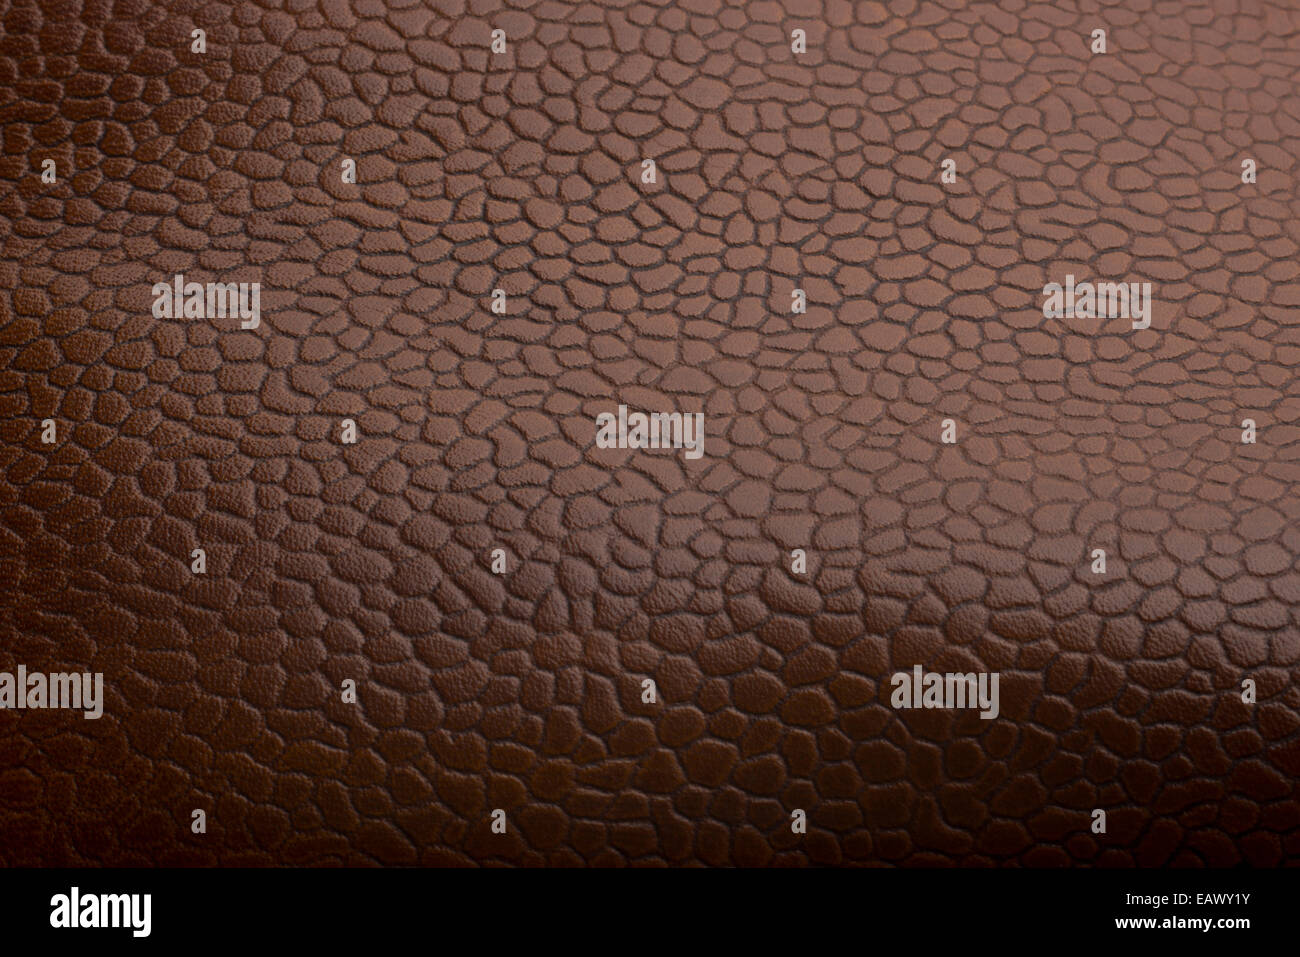 Rustic, textured shoe leather. Polished surface of English real brown leather, made in Northampton. - Stock Image